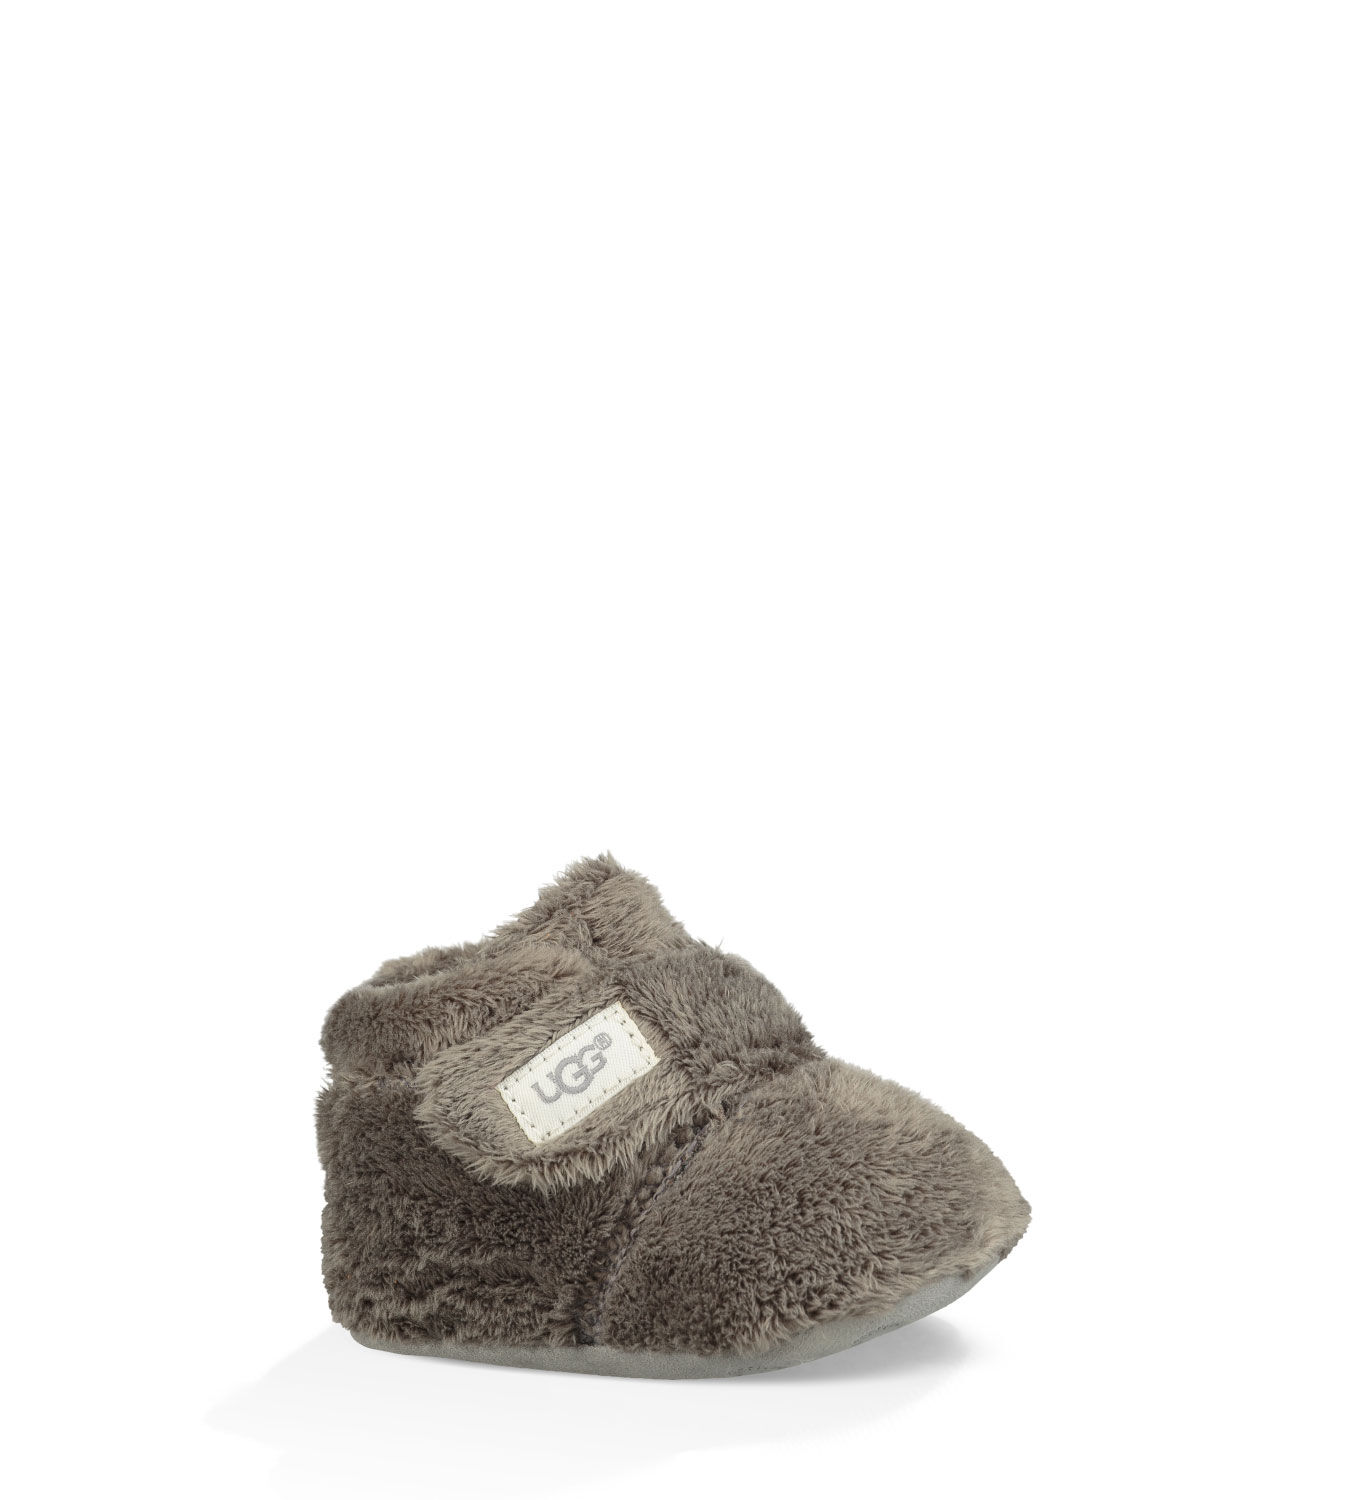 baby uggs slippers